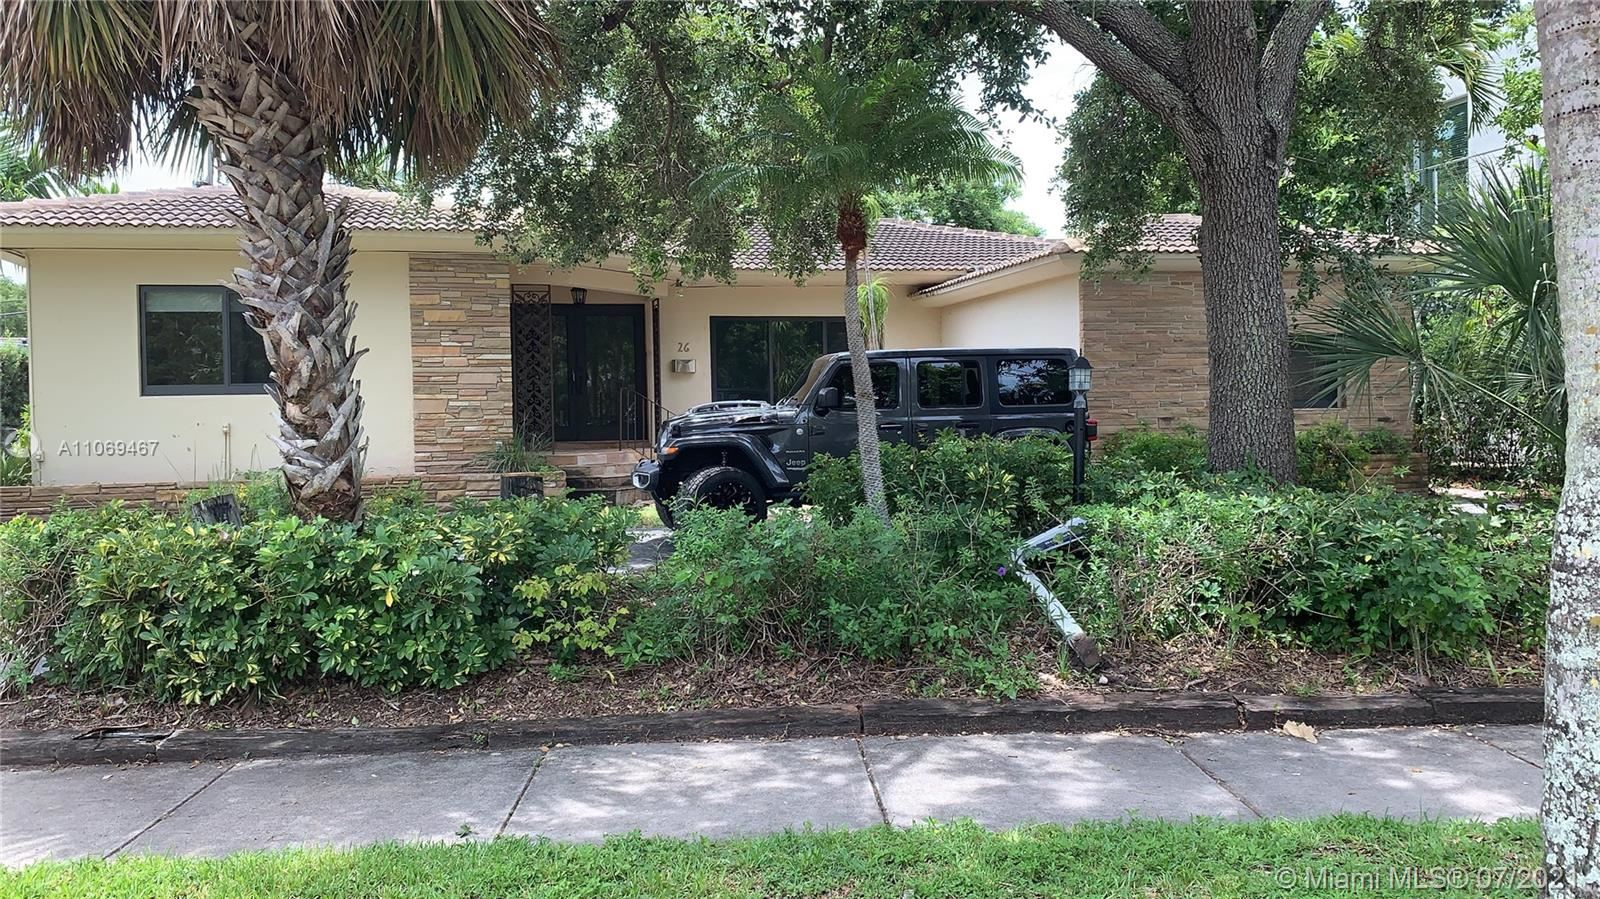 26 Bay Heights Dr, Miami, FL 33133 - #: A11069467